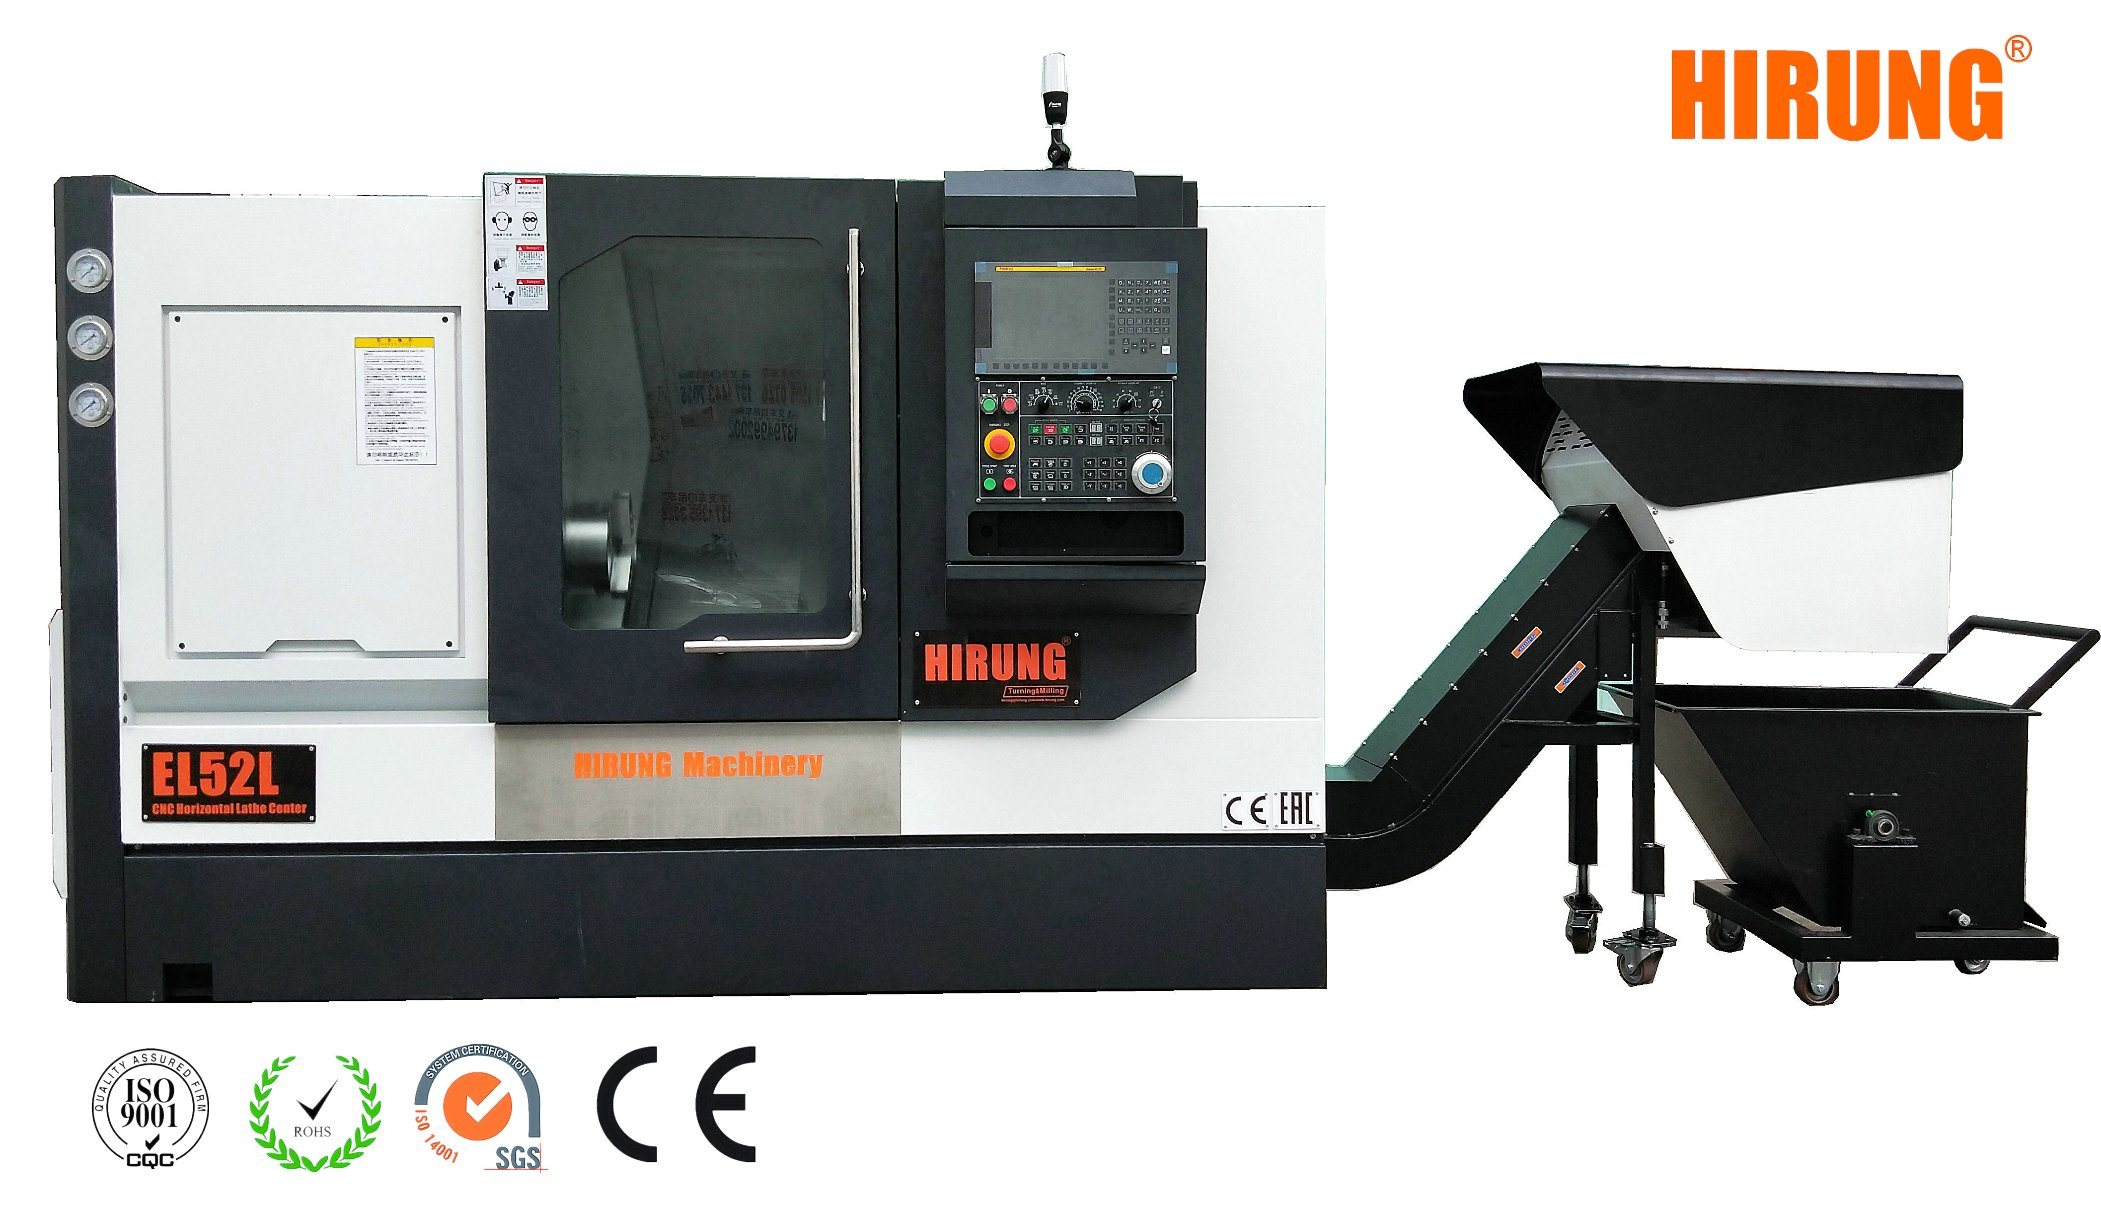 12 Tools Servo Turret CNC Horizontal Lathe Machine, CNC Turning Machinery  Center (EL52L)